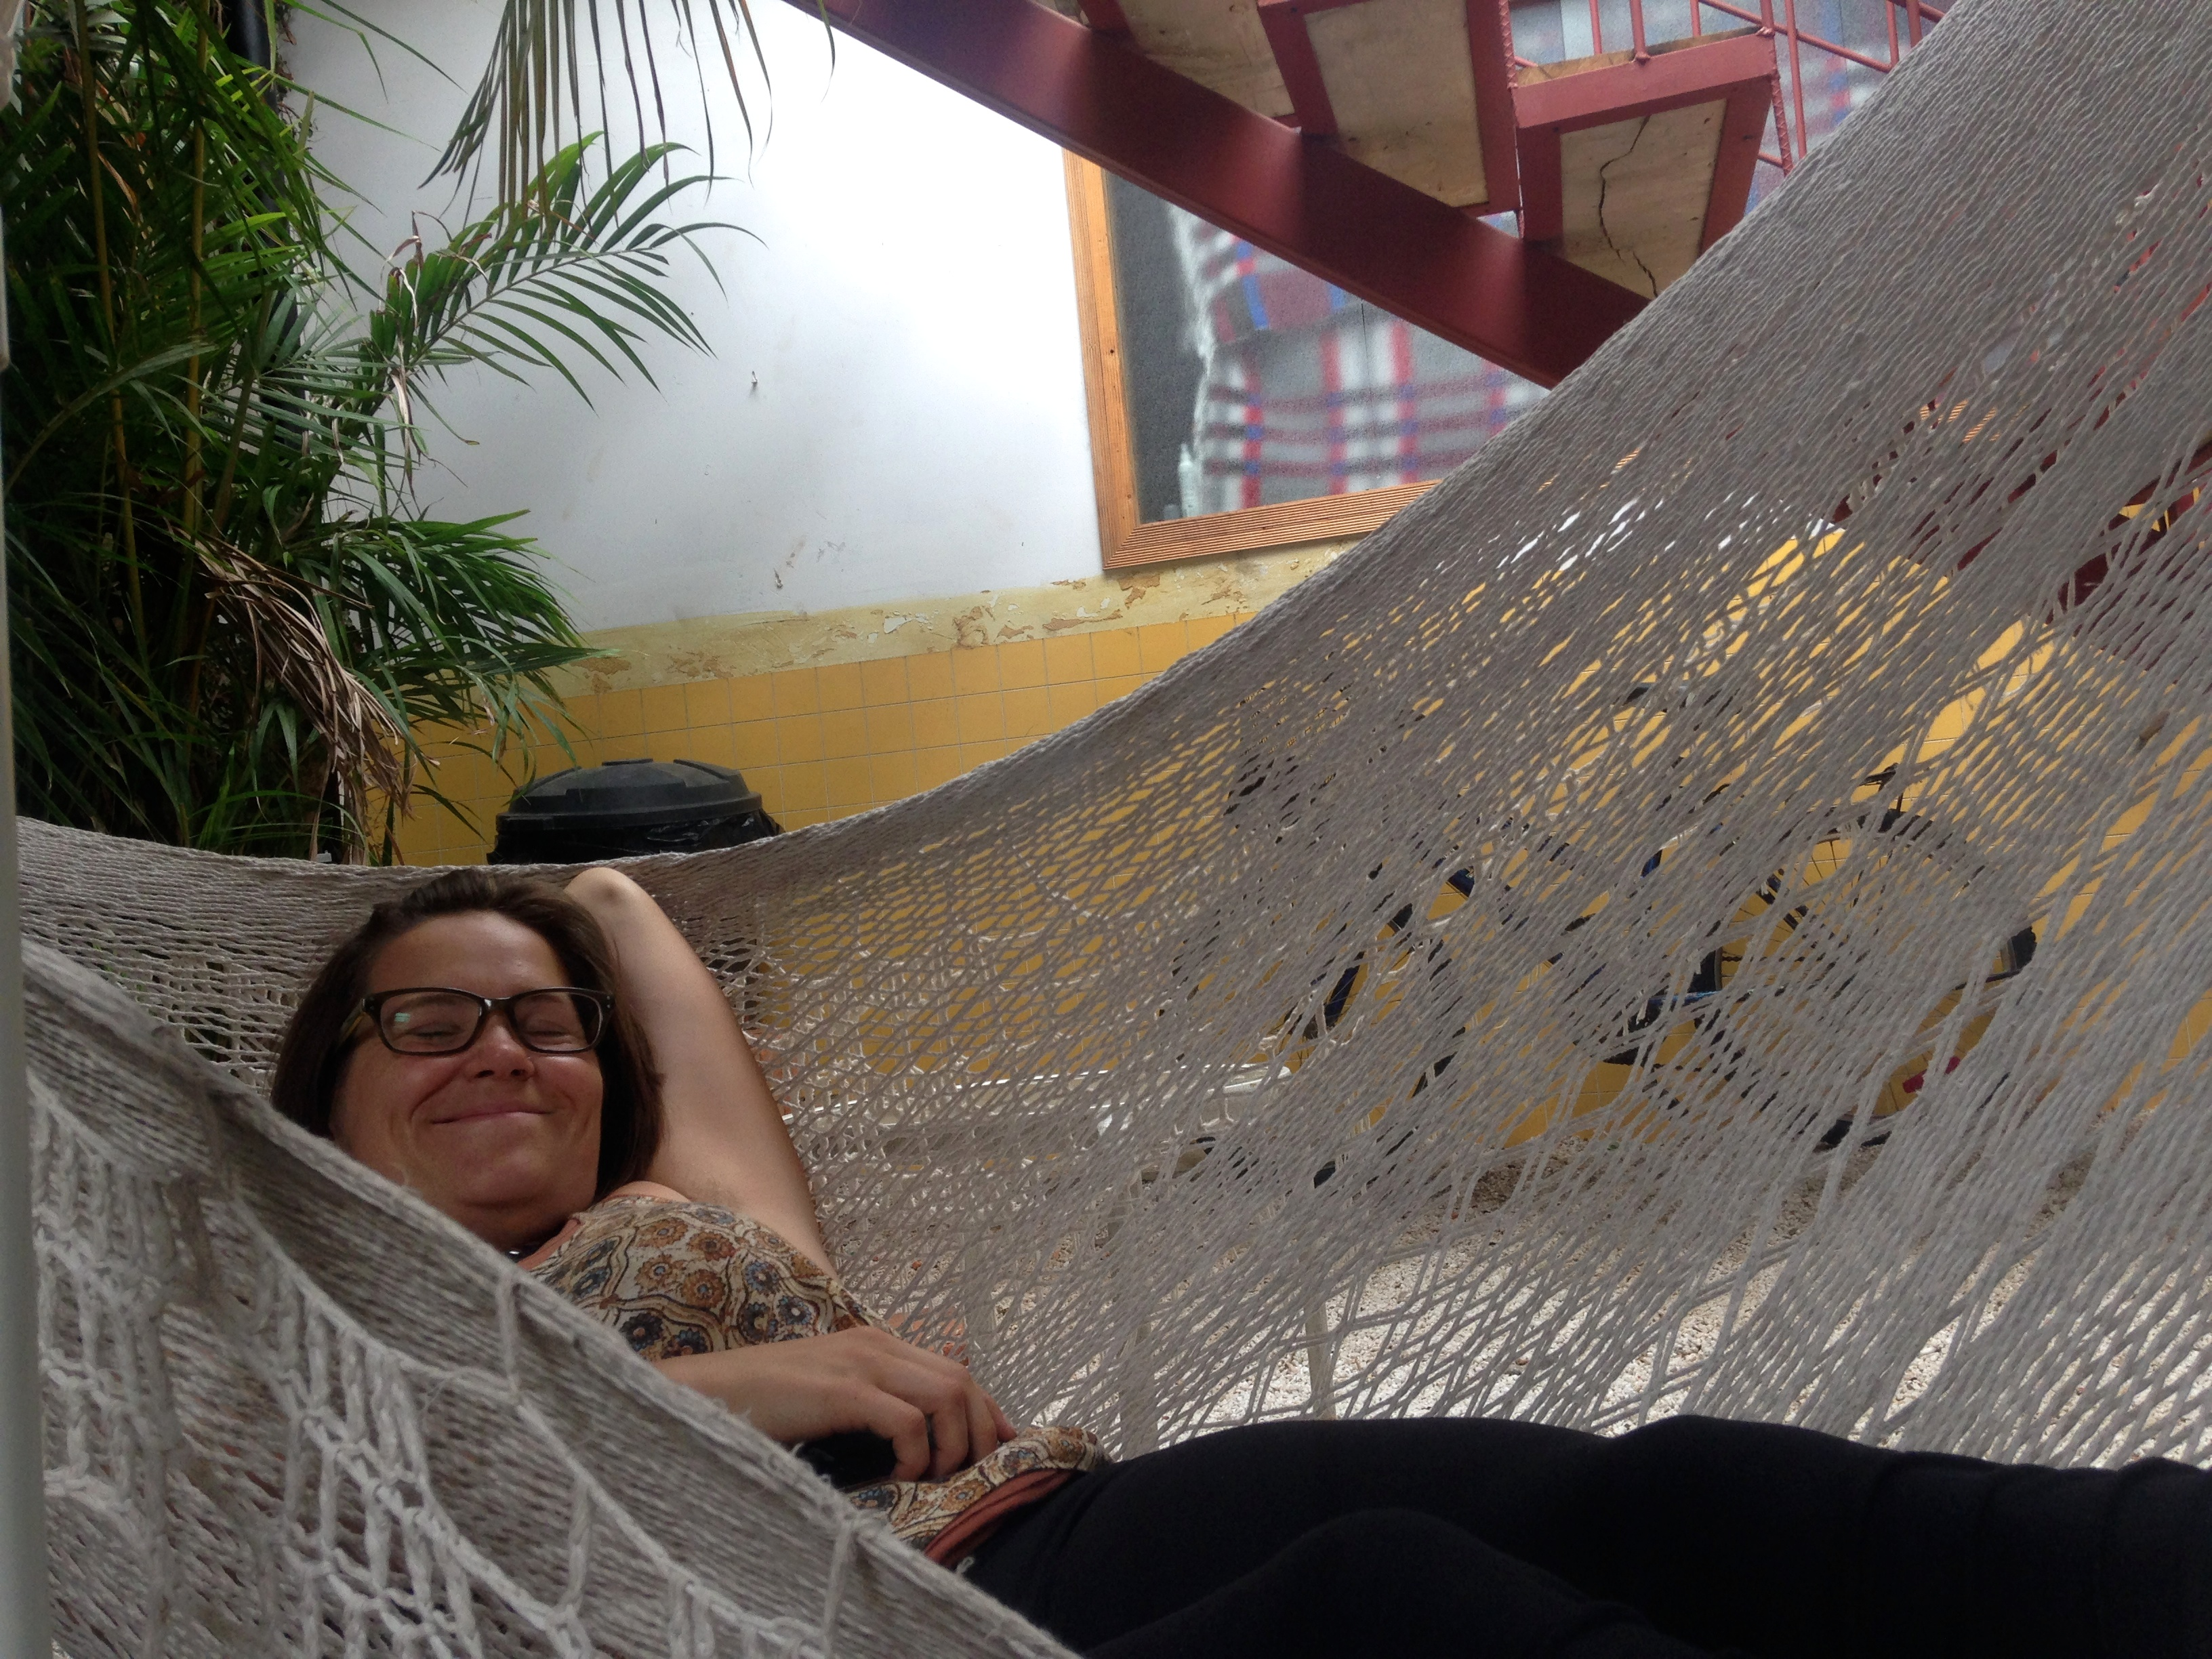 We spent many hours in the hammocks